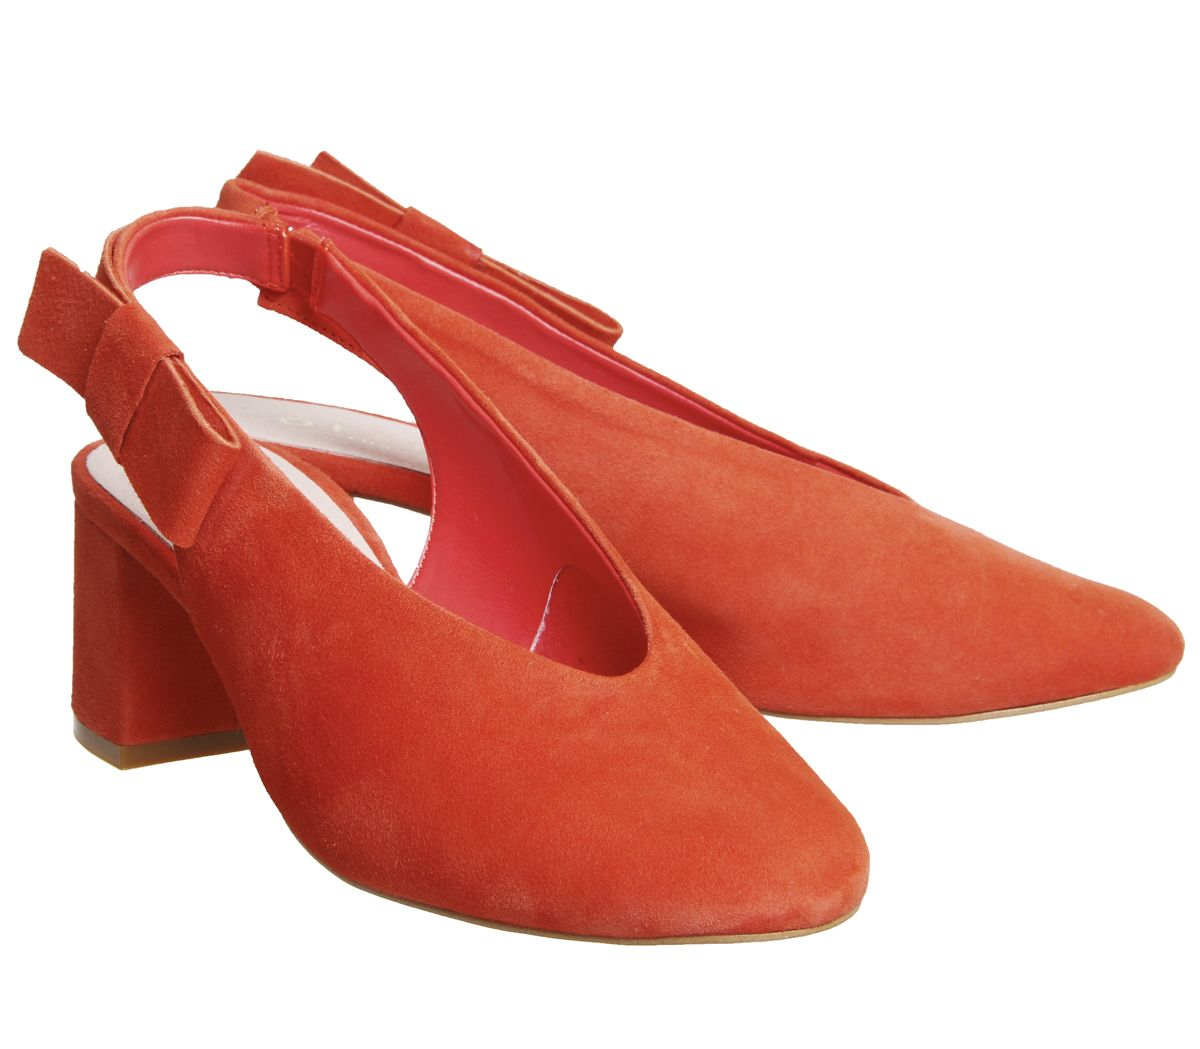 Womens-Office-Magical-Bow-Slingback-Heels-Red-Suede-Heels thumbnail 10